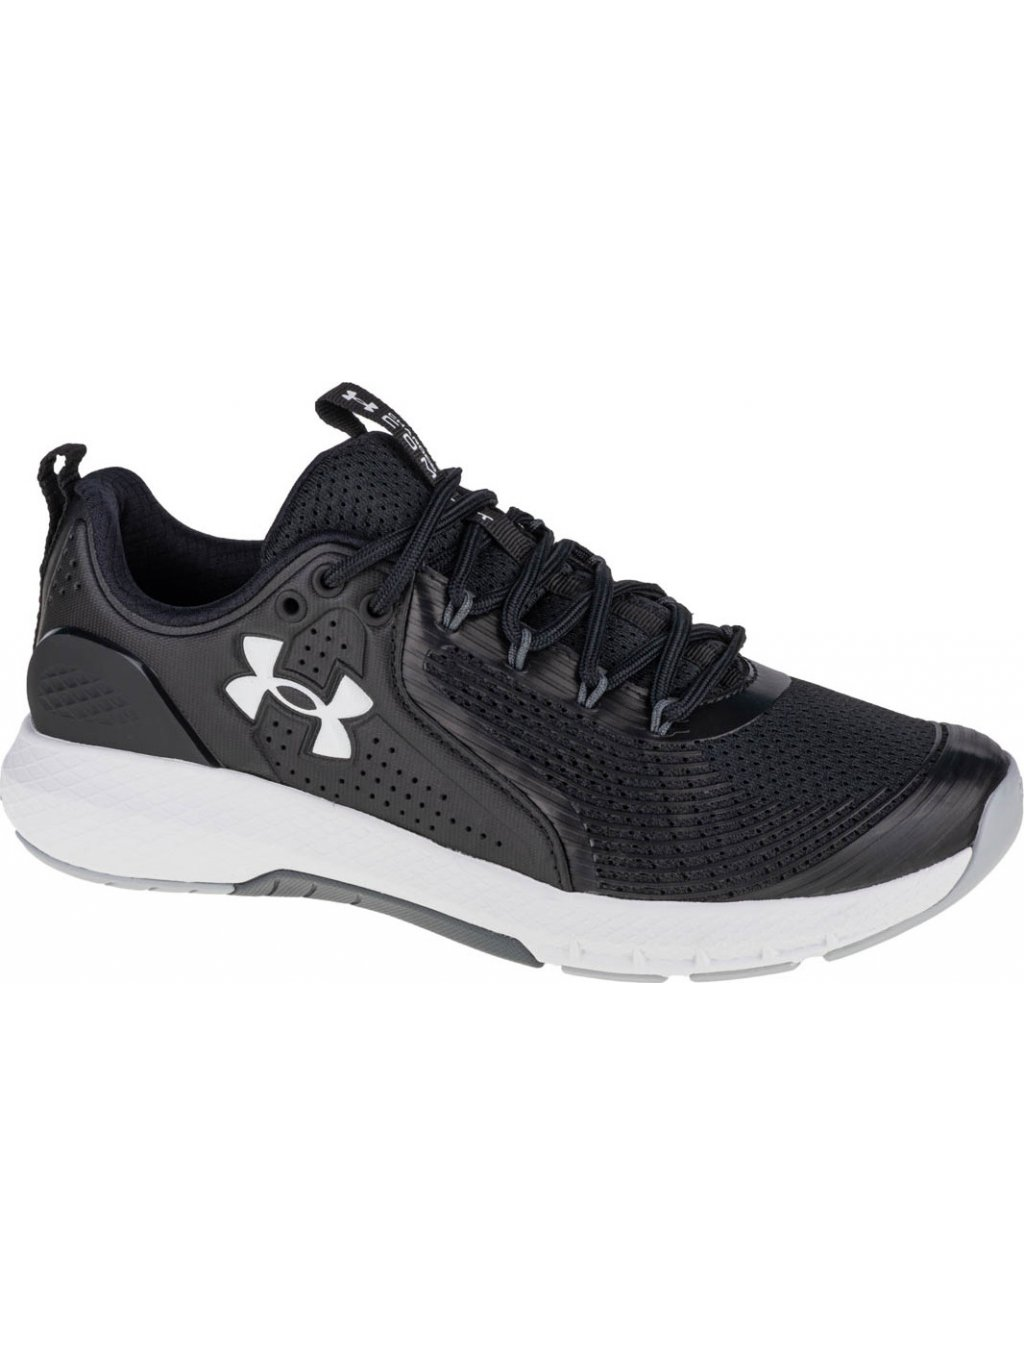 UNDER ARMOUR CHARGED COMMIT TR 3 3023703-001